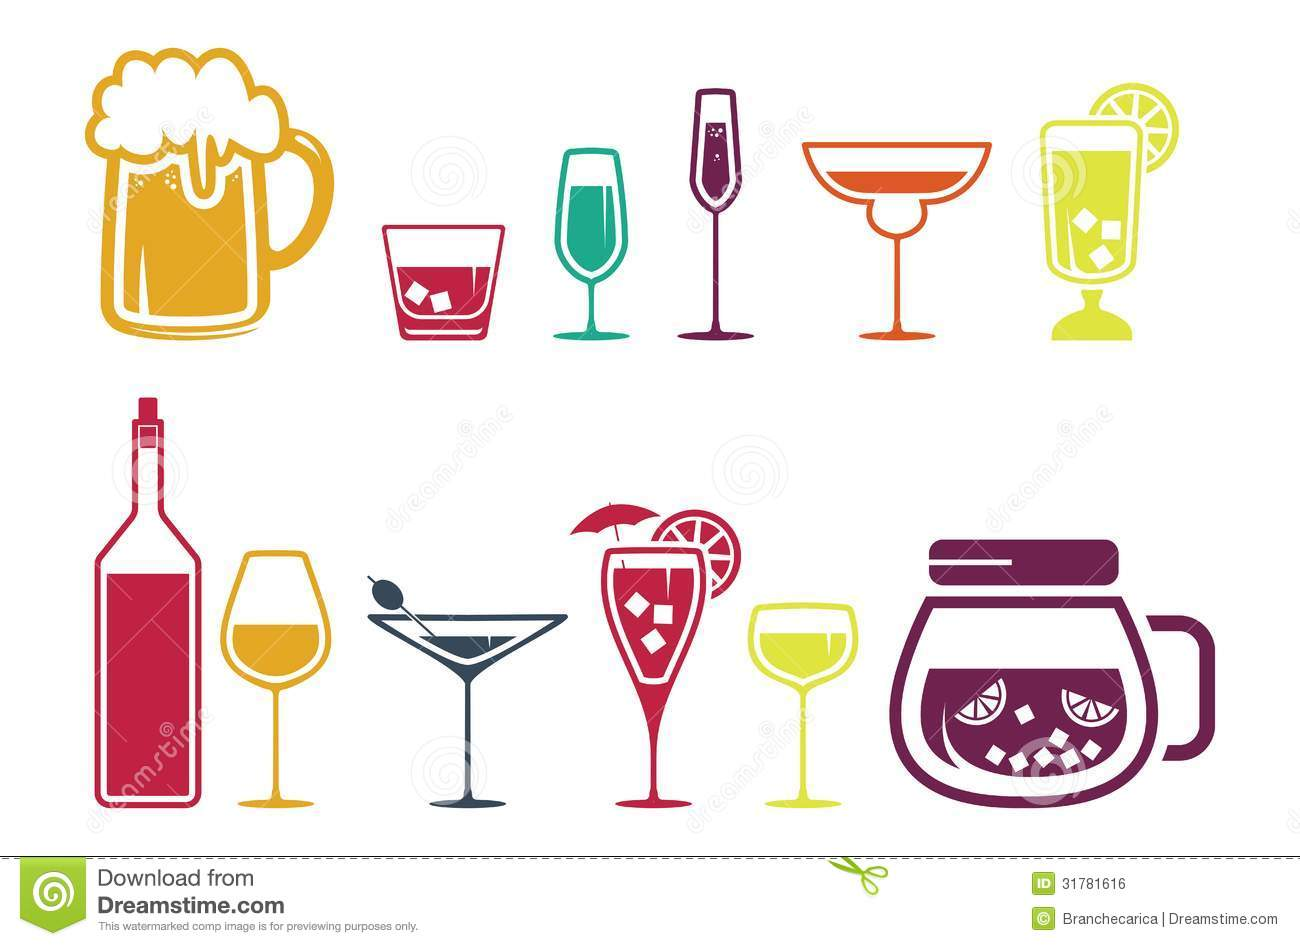 Royalty Free Stock Image Drink Alcohol Beverage Icons Set Vector Illustration Image31781616 on cup of juice clip art